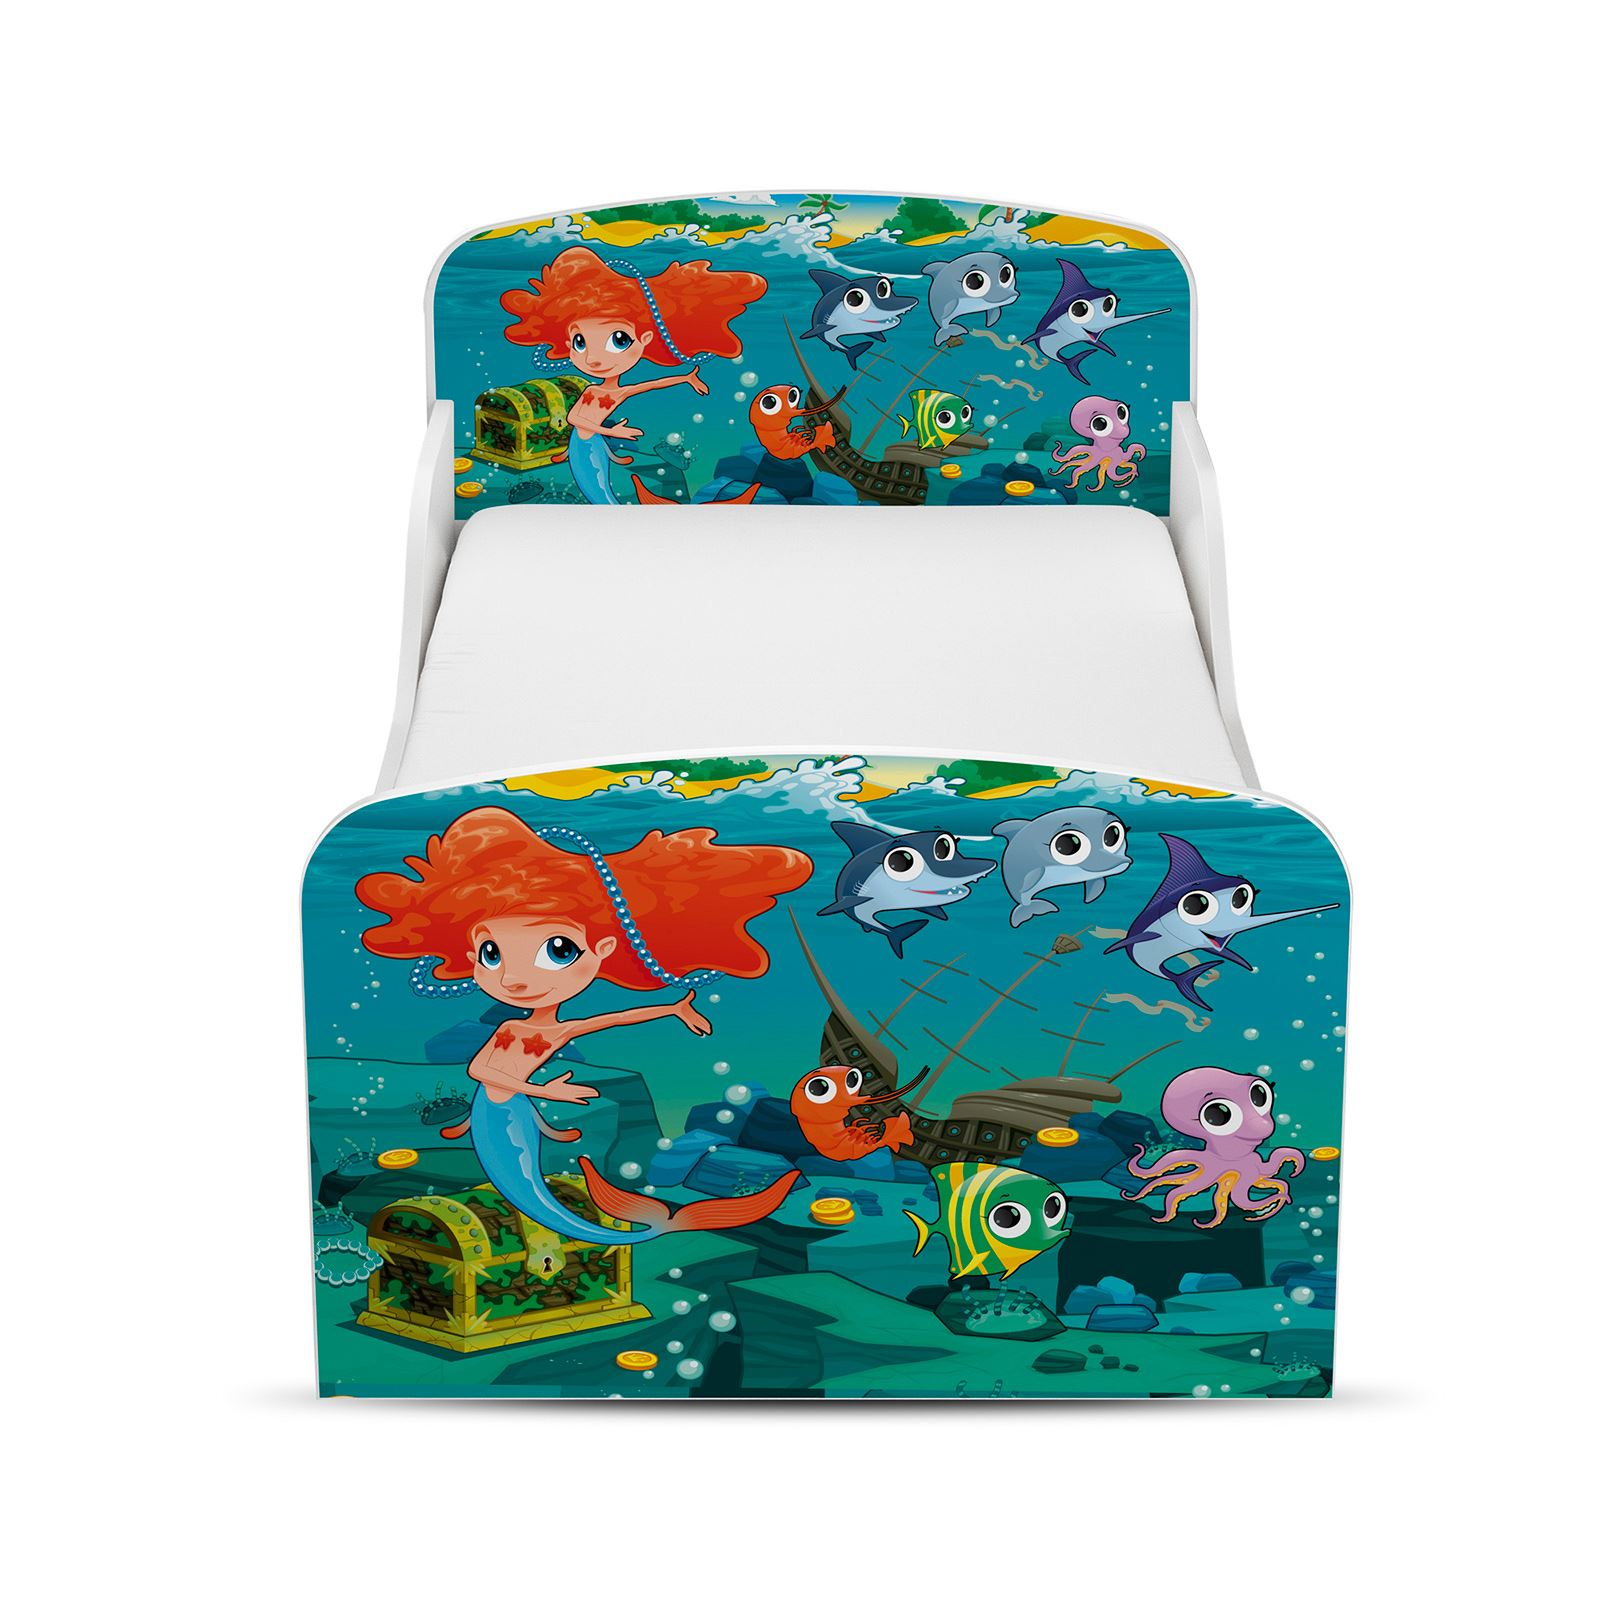 Mermaid Toddler Bed Foam Mattress Girls Kids Junior